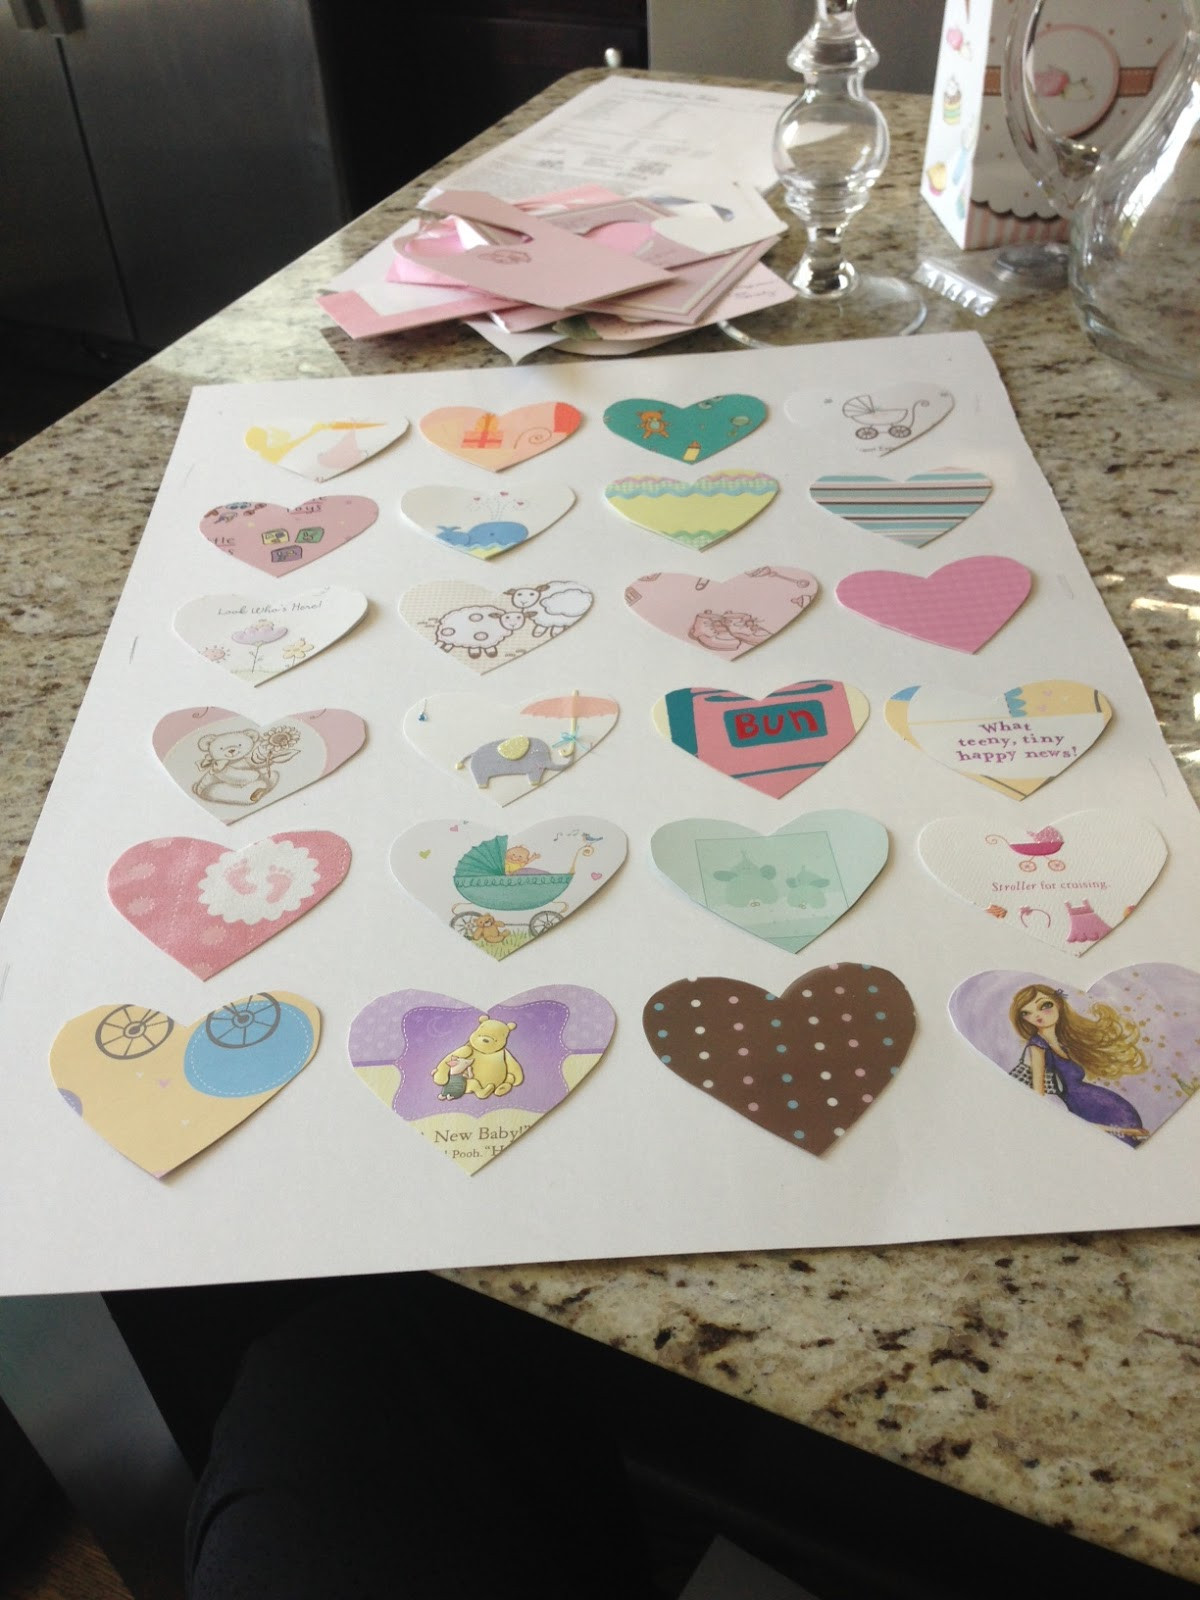 Best ideas about DIY Baby Shower Card . Save or Pin Veronika s Blushing DIY Transform Your Baby Shower Cards Now.